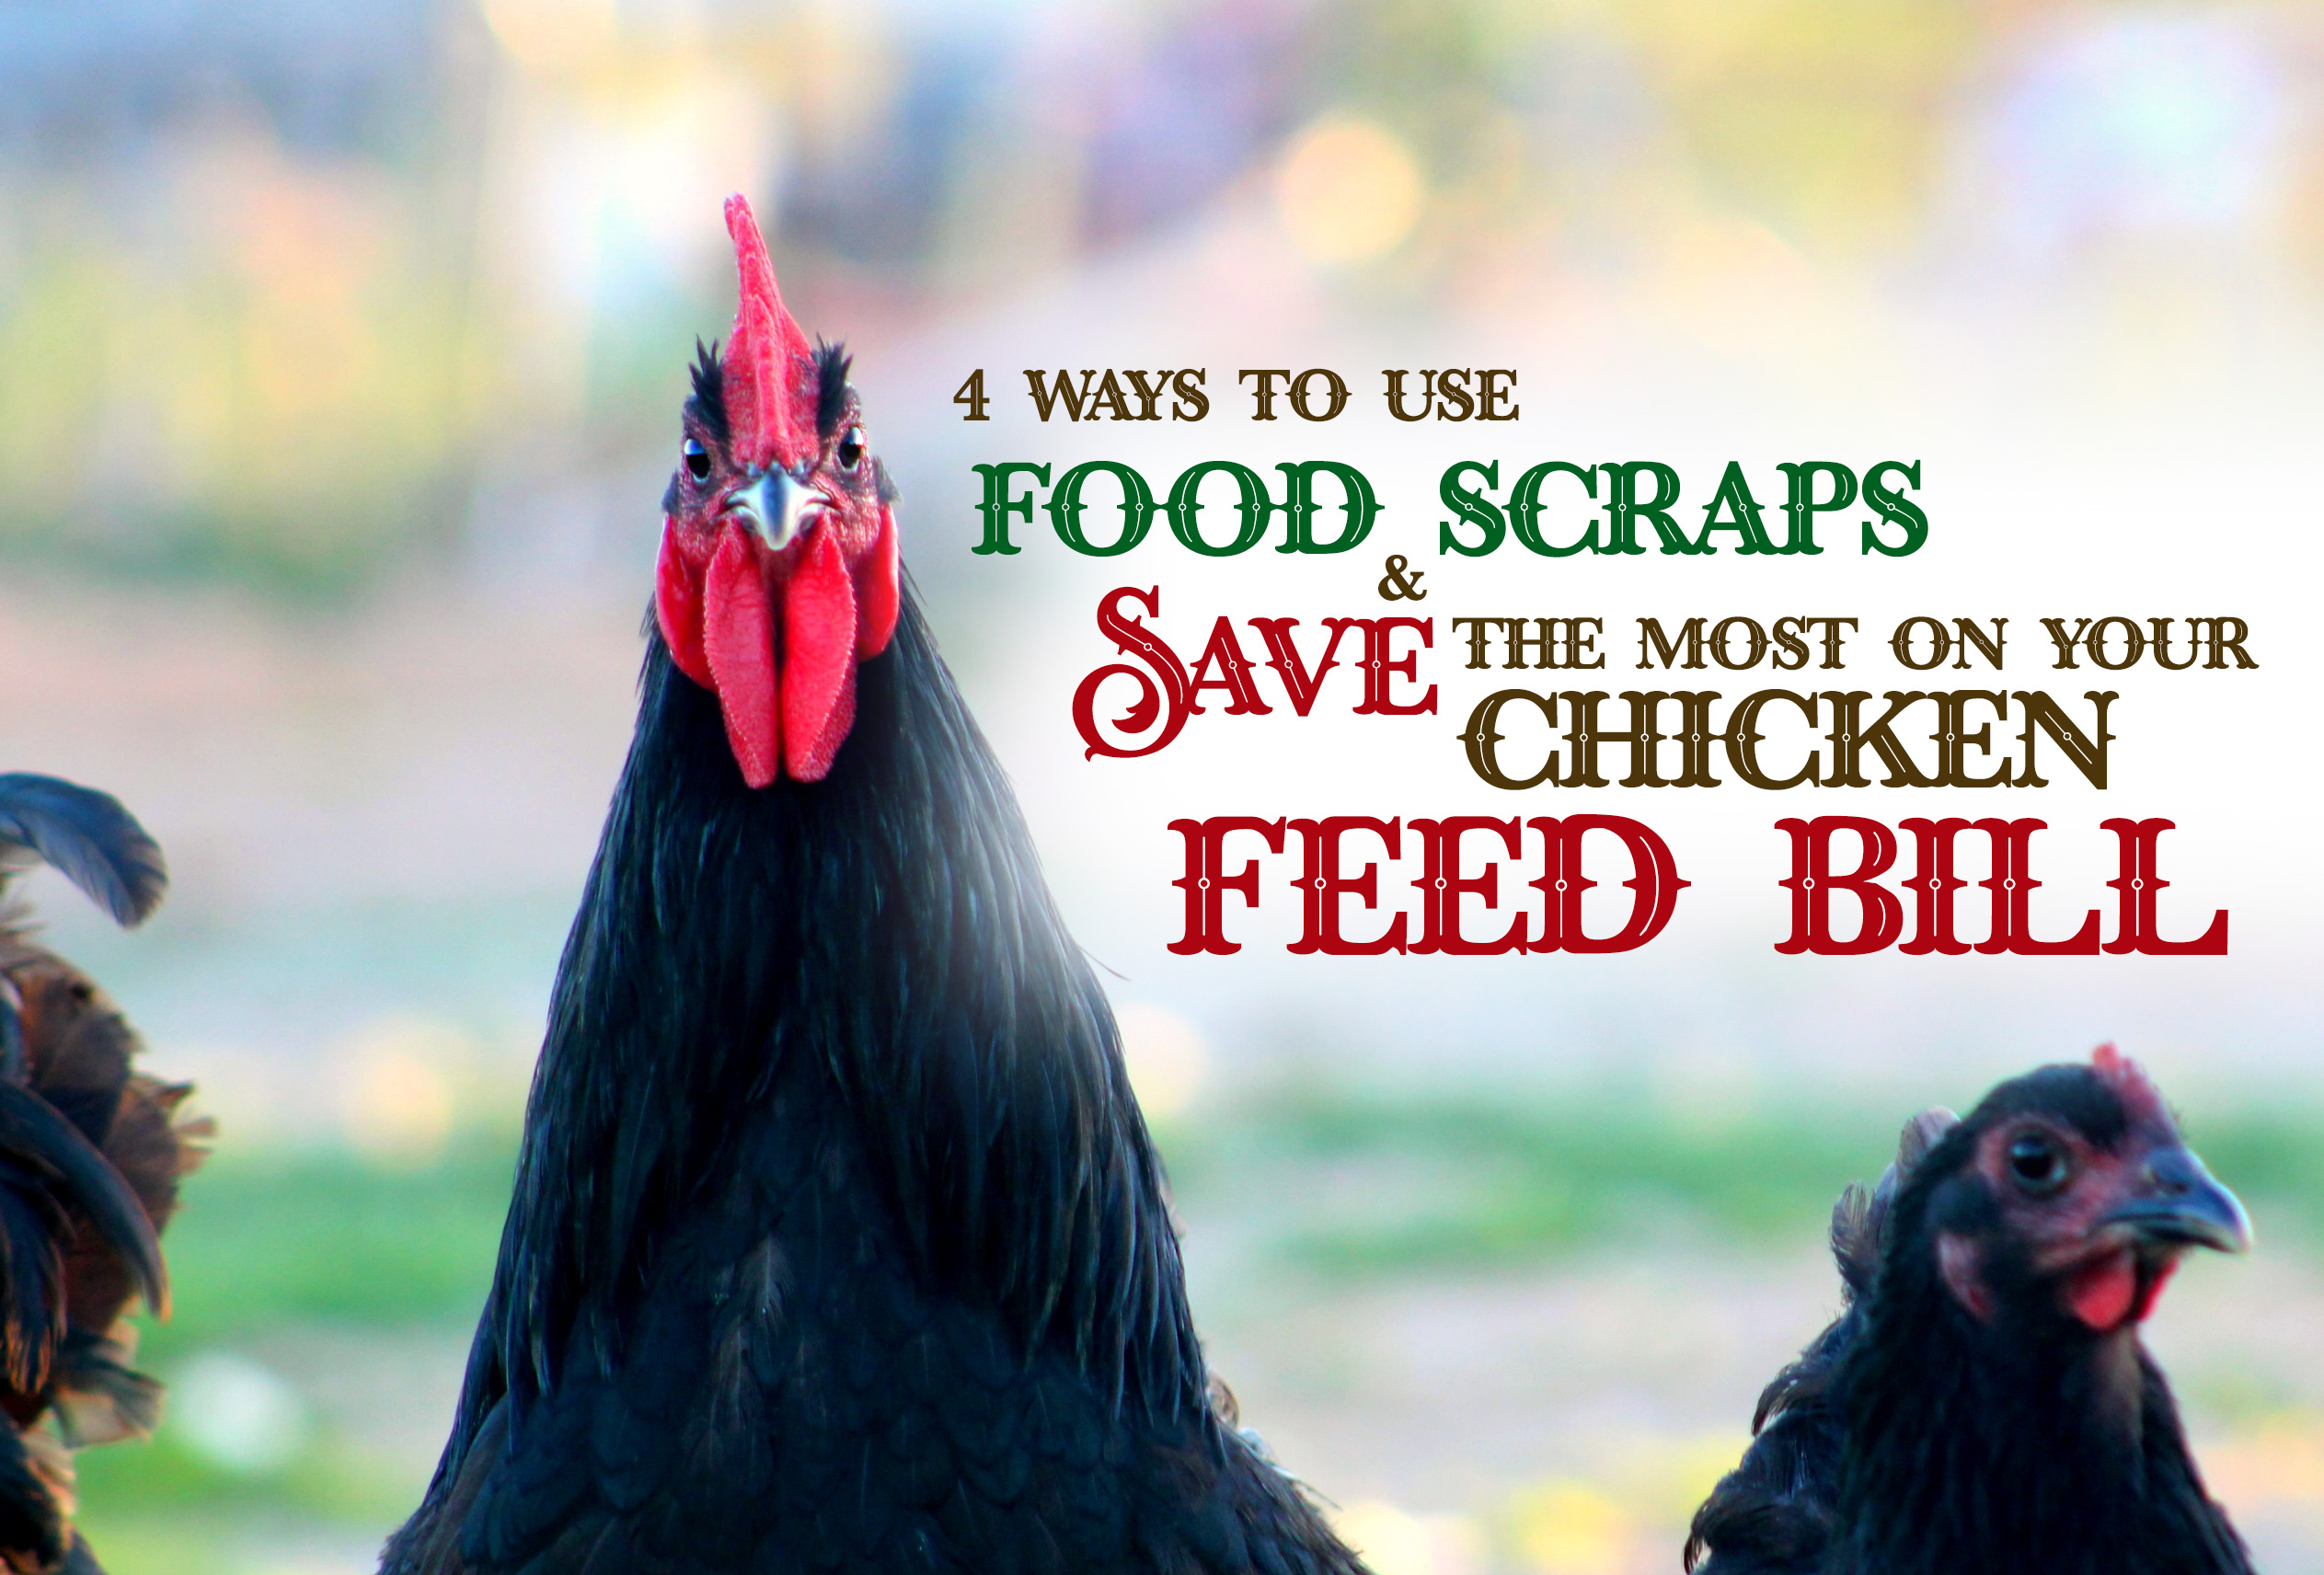 Learn how you can save more money on your chickens' feed bill by feeding them your food scraps. Beyond the basic & holistic ways you can use your kitchen scraps. For those who like sustainable & DIY.